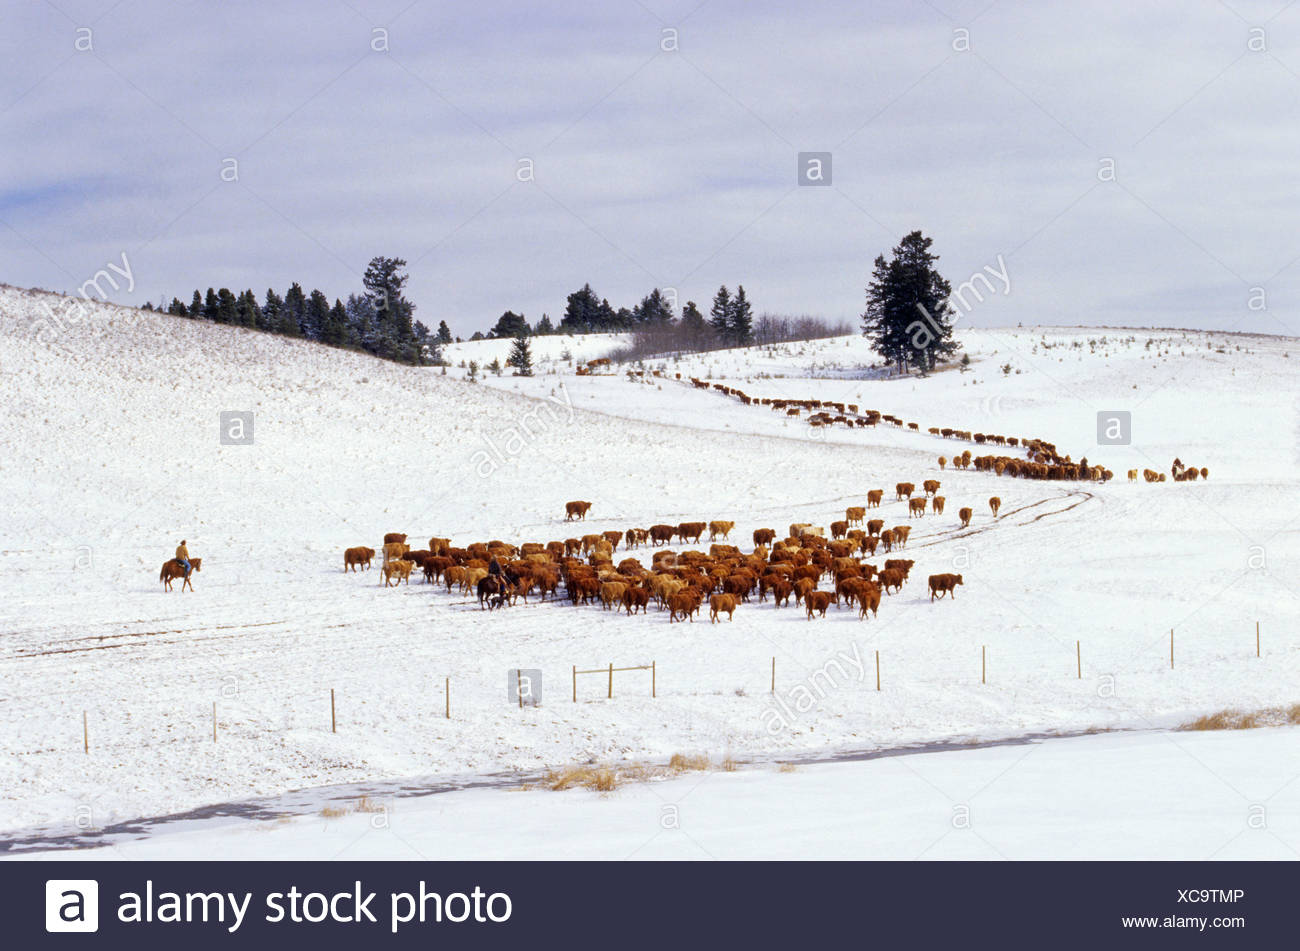 Cattle roundup in the winter in the Cariboo region of British Columbia, Canada - Stock Image